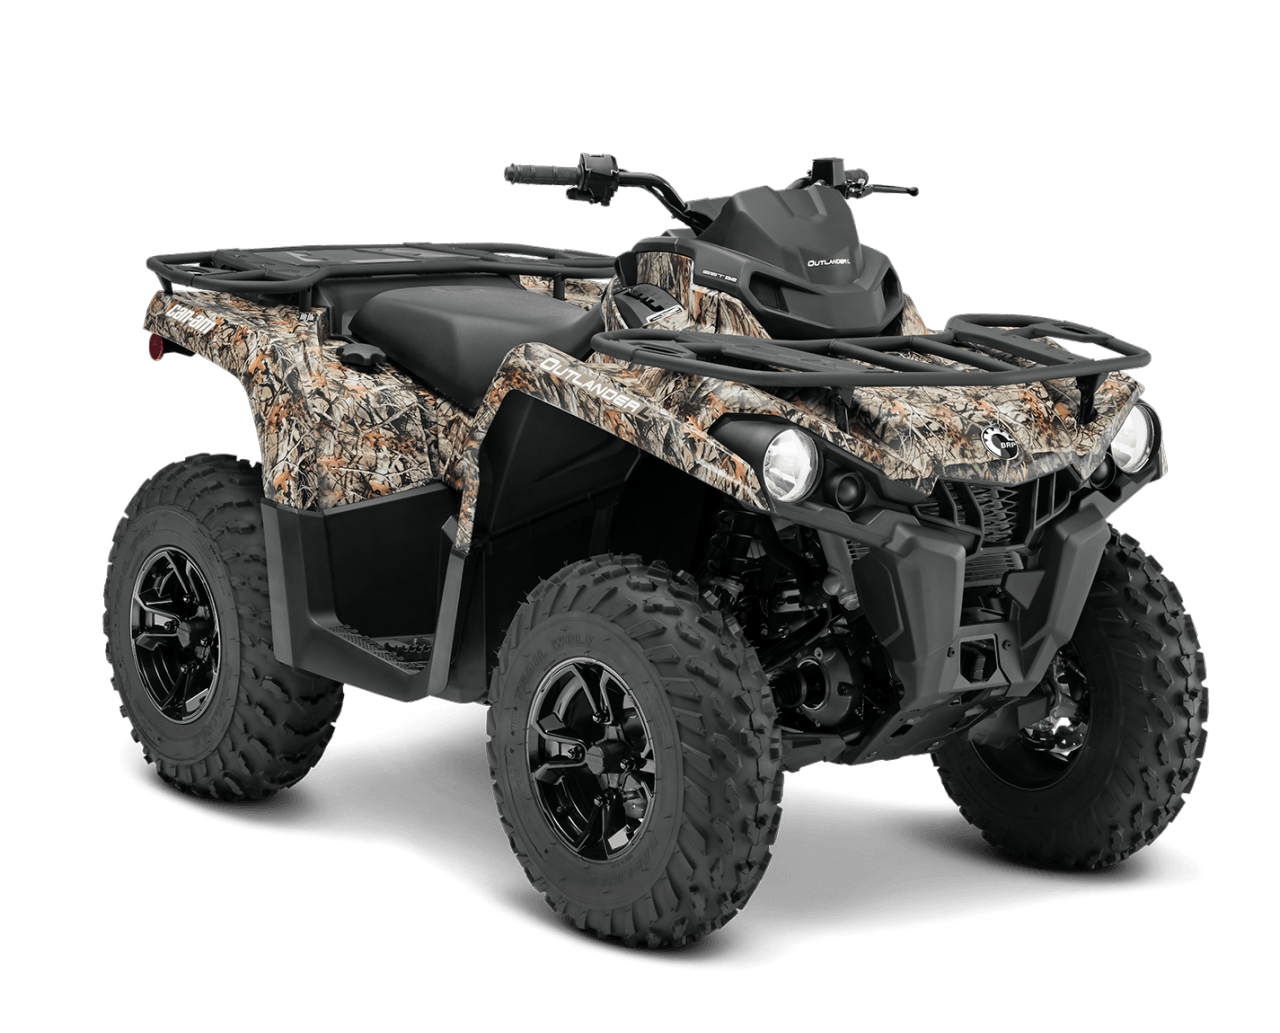 new 2015 can am outlander l dps 450 atvs in cambridge oh stock number stocknumber. Black Bedroom Furniture Sets. Home Design Ideas